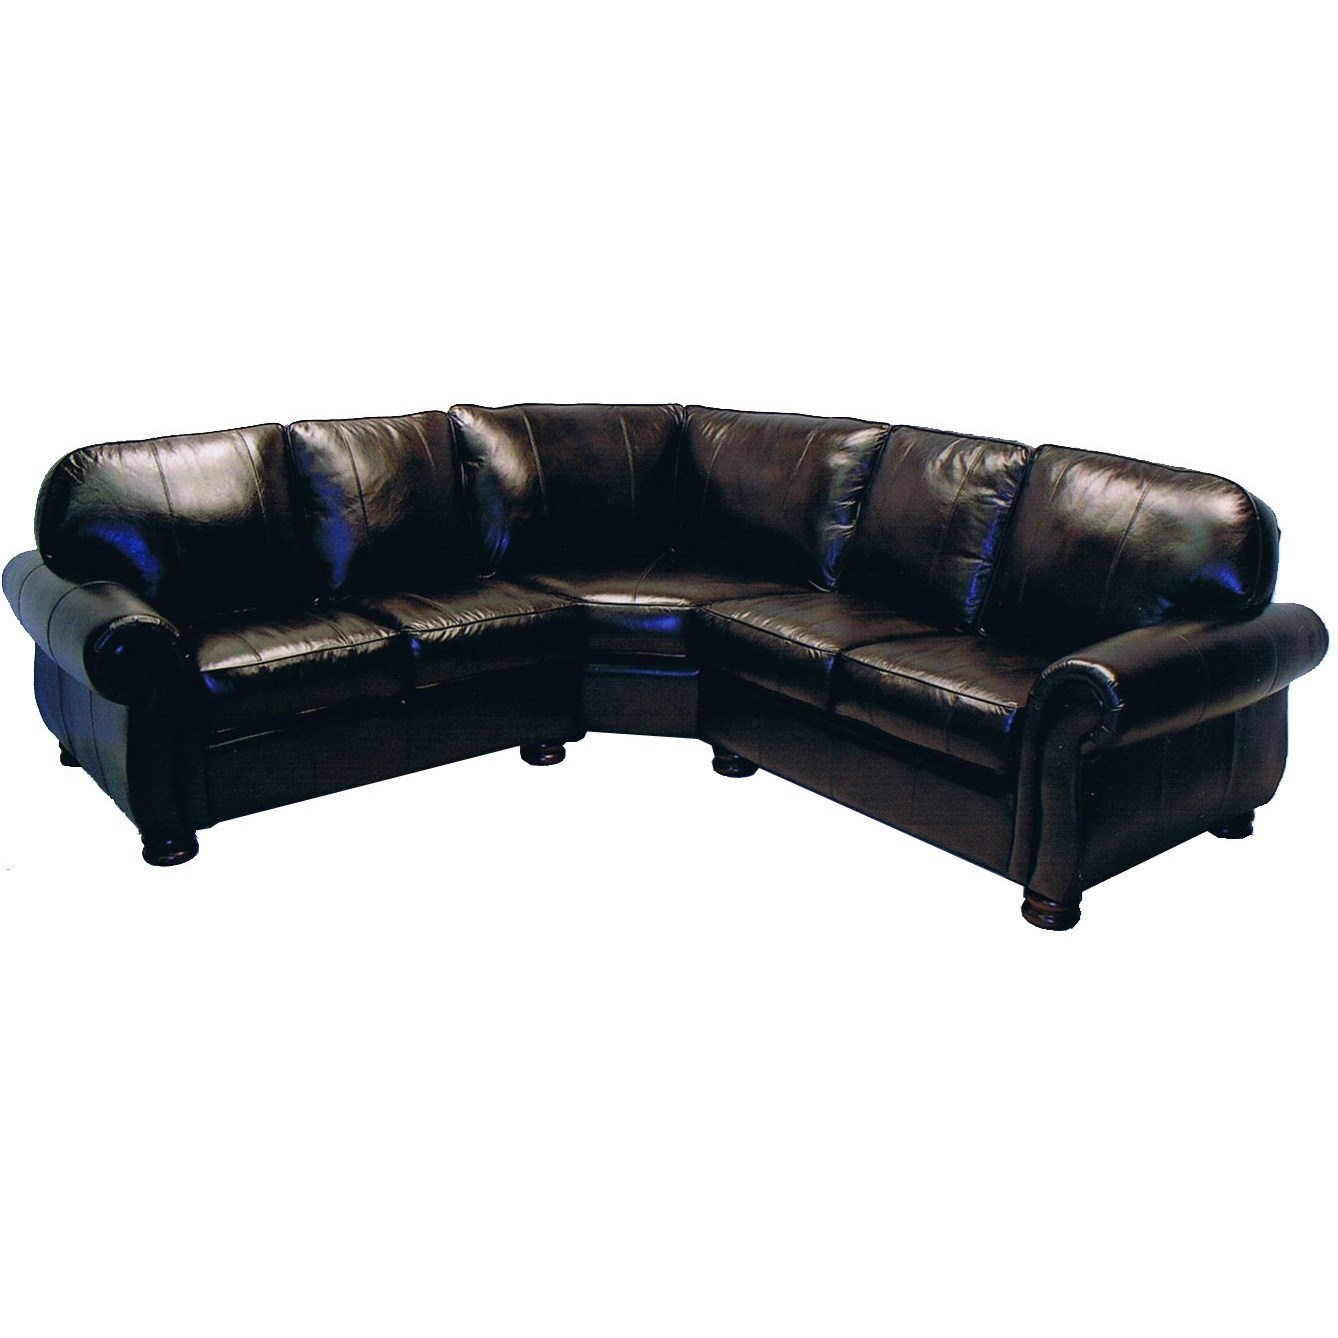 8611 Leather Sectional by LaCrosse at Mueller Furniture